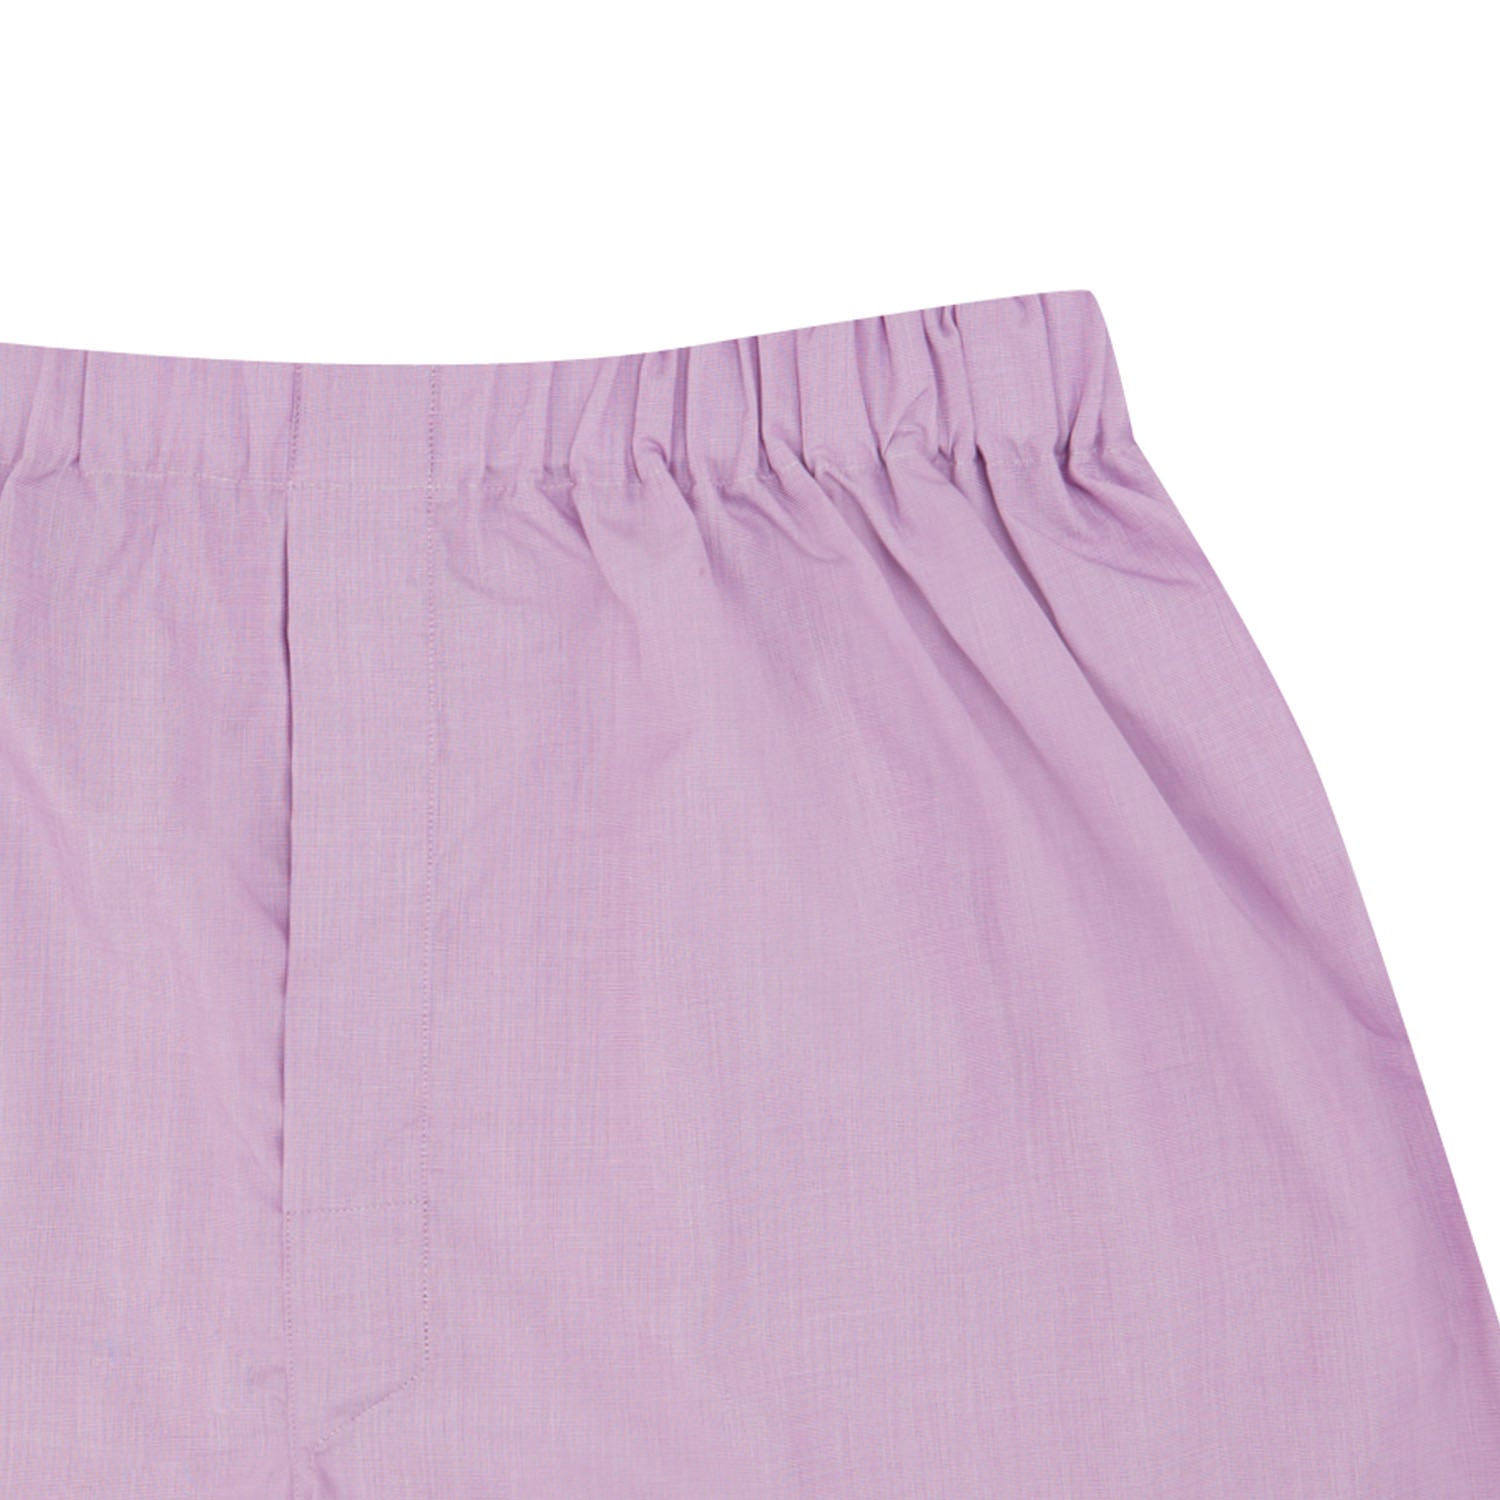 Lilac End-On-End Cotton Boxer Shorts